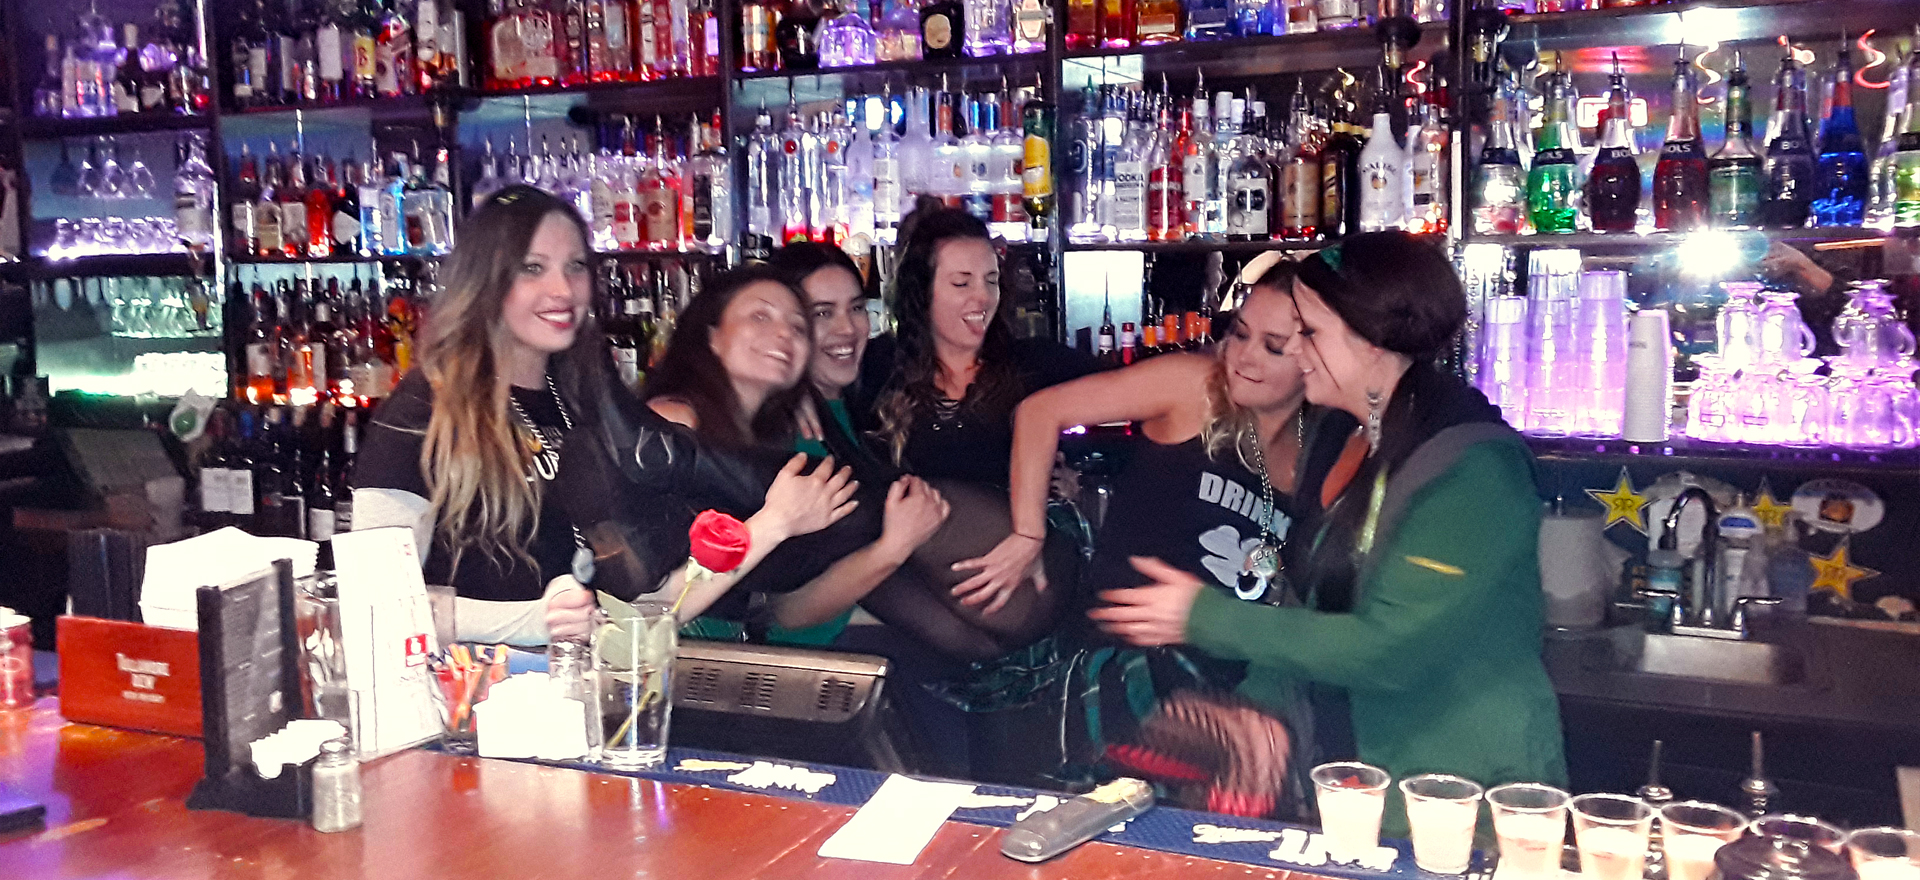 Friendly bar play at JB O'Brien's Irish Pub & Sports Bar